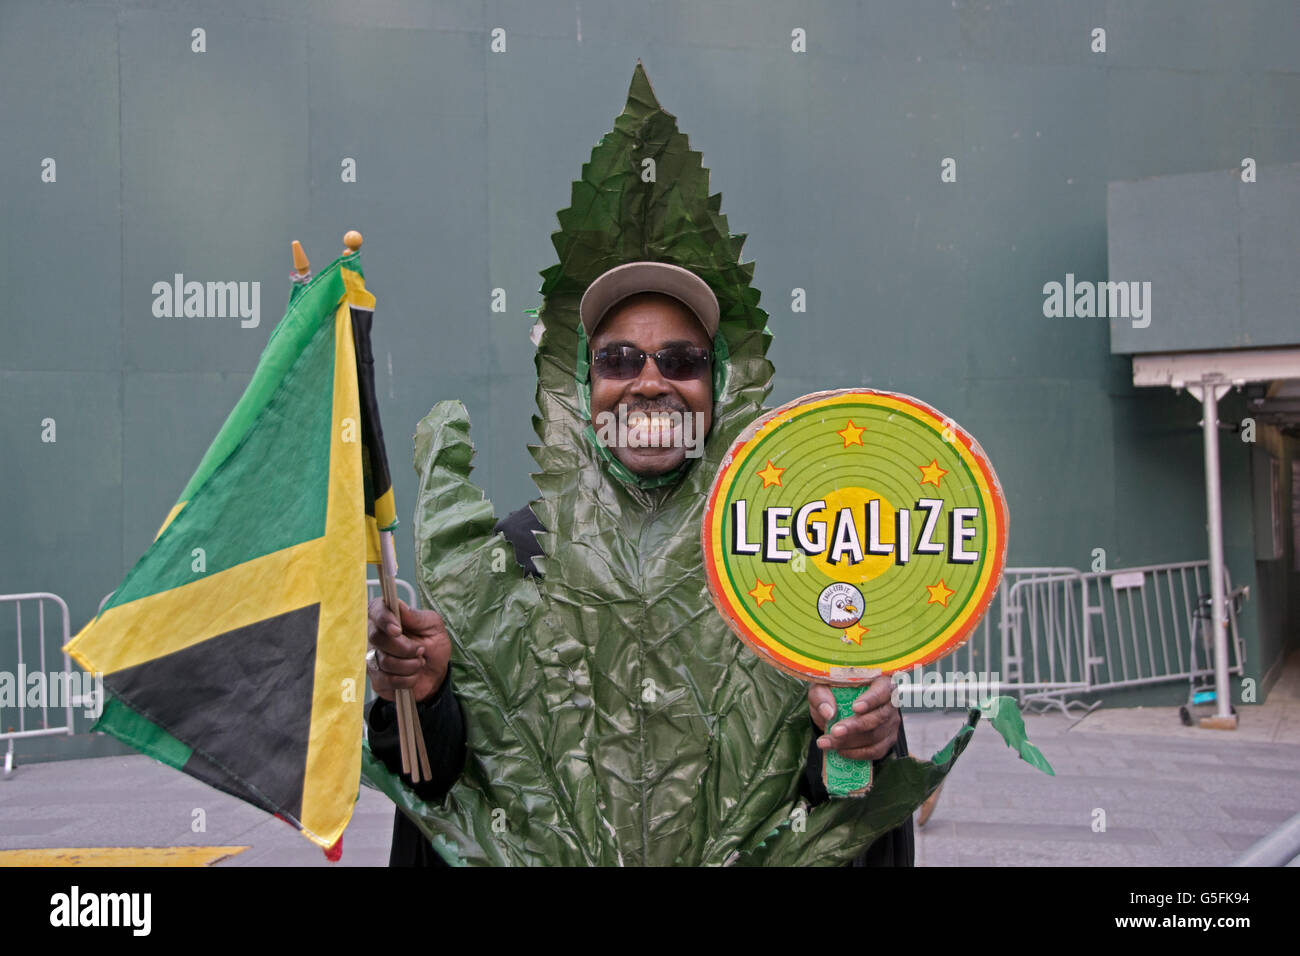 Pentola Jamaica Jamaica Man Smoking Marijuana Immagini Jamaica Man Smoking